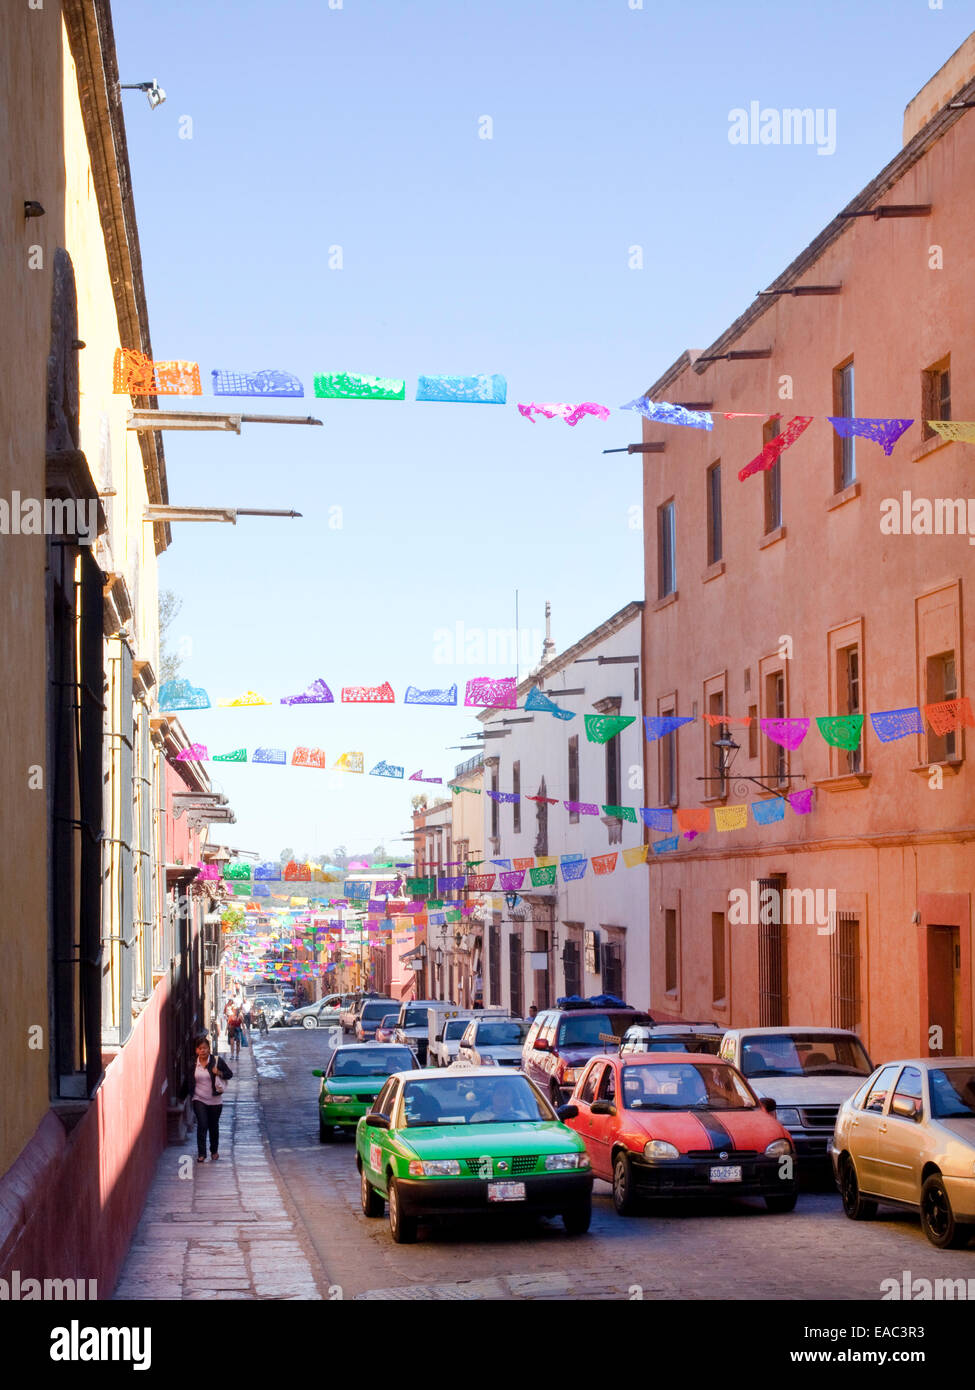 Decorative Paper Streamers over a Mexican Street - Stock Image